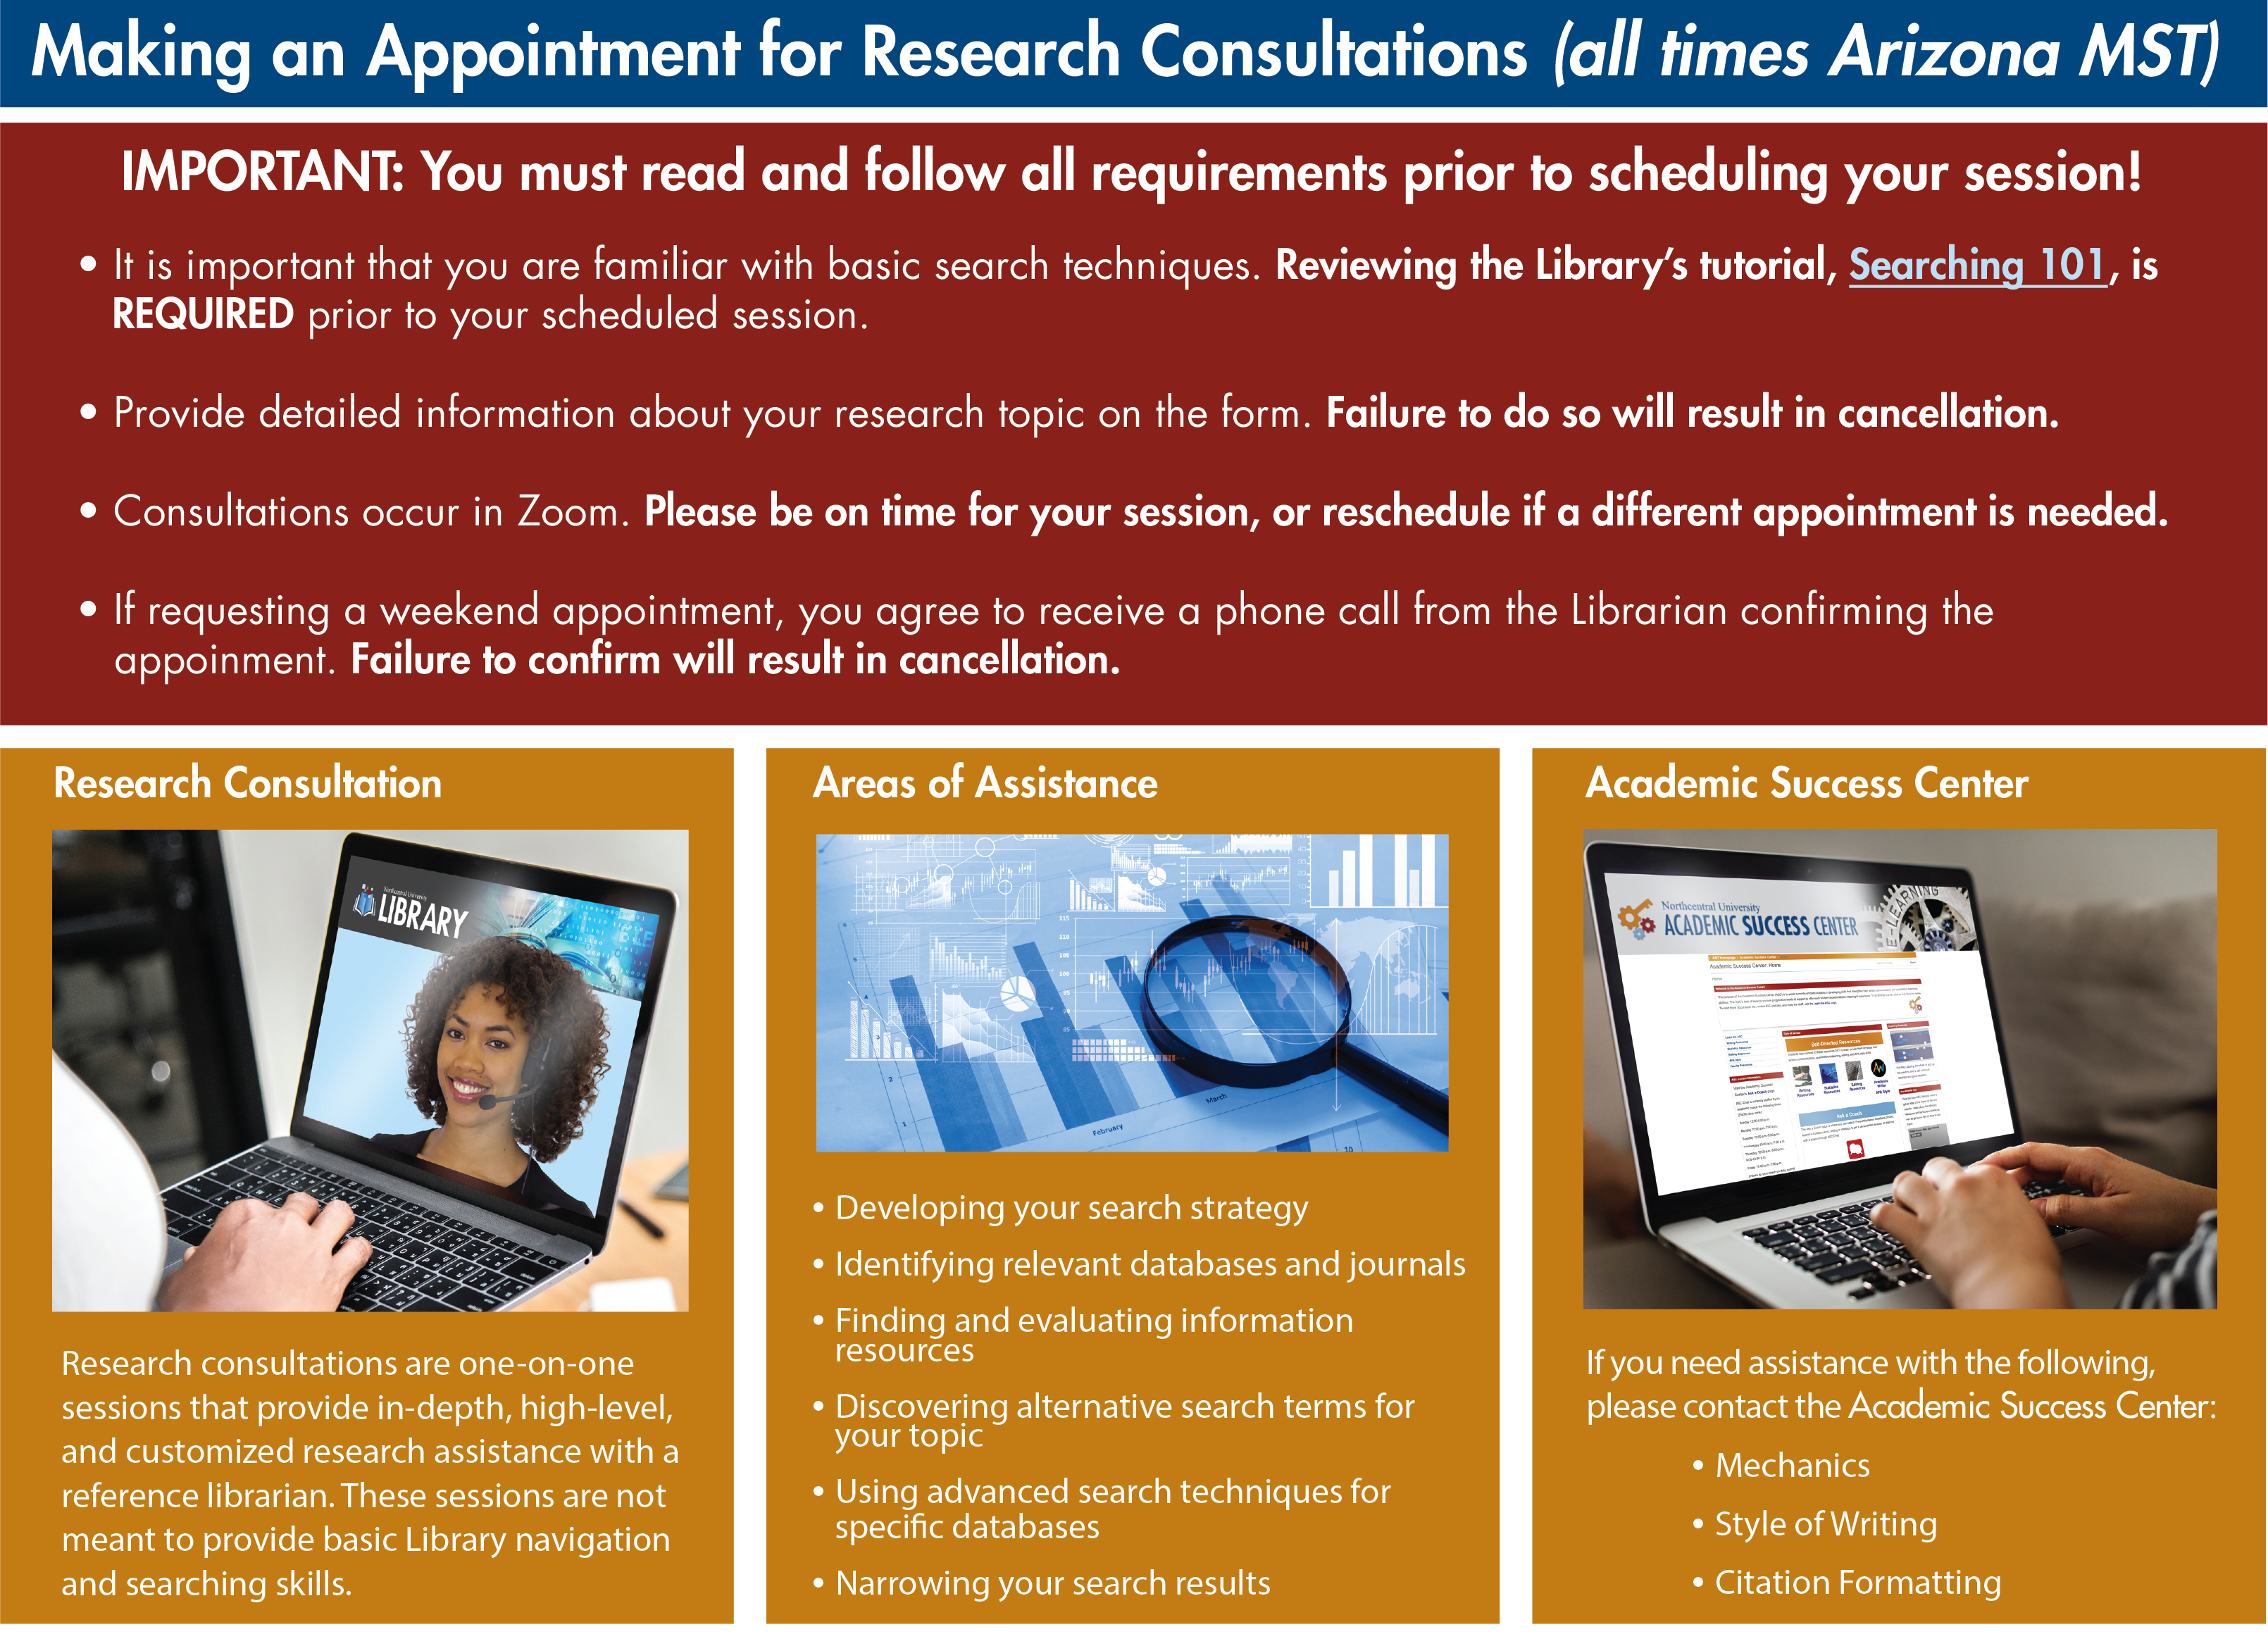 Research Consultations requirements including policies and support